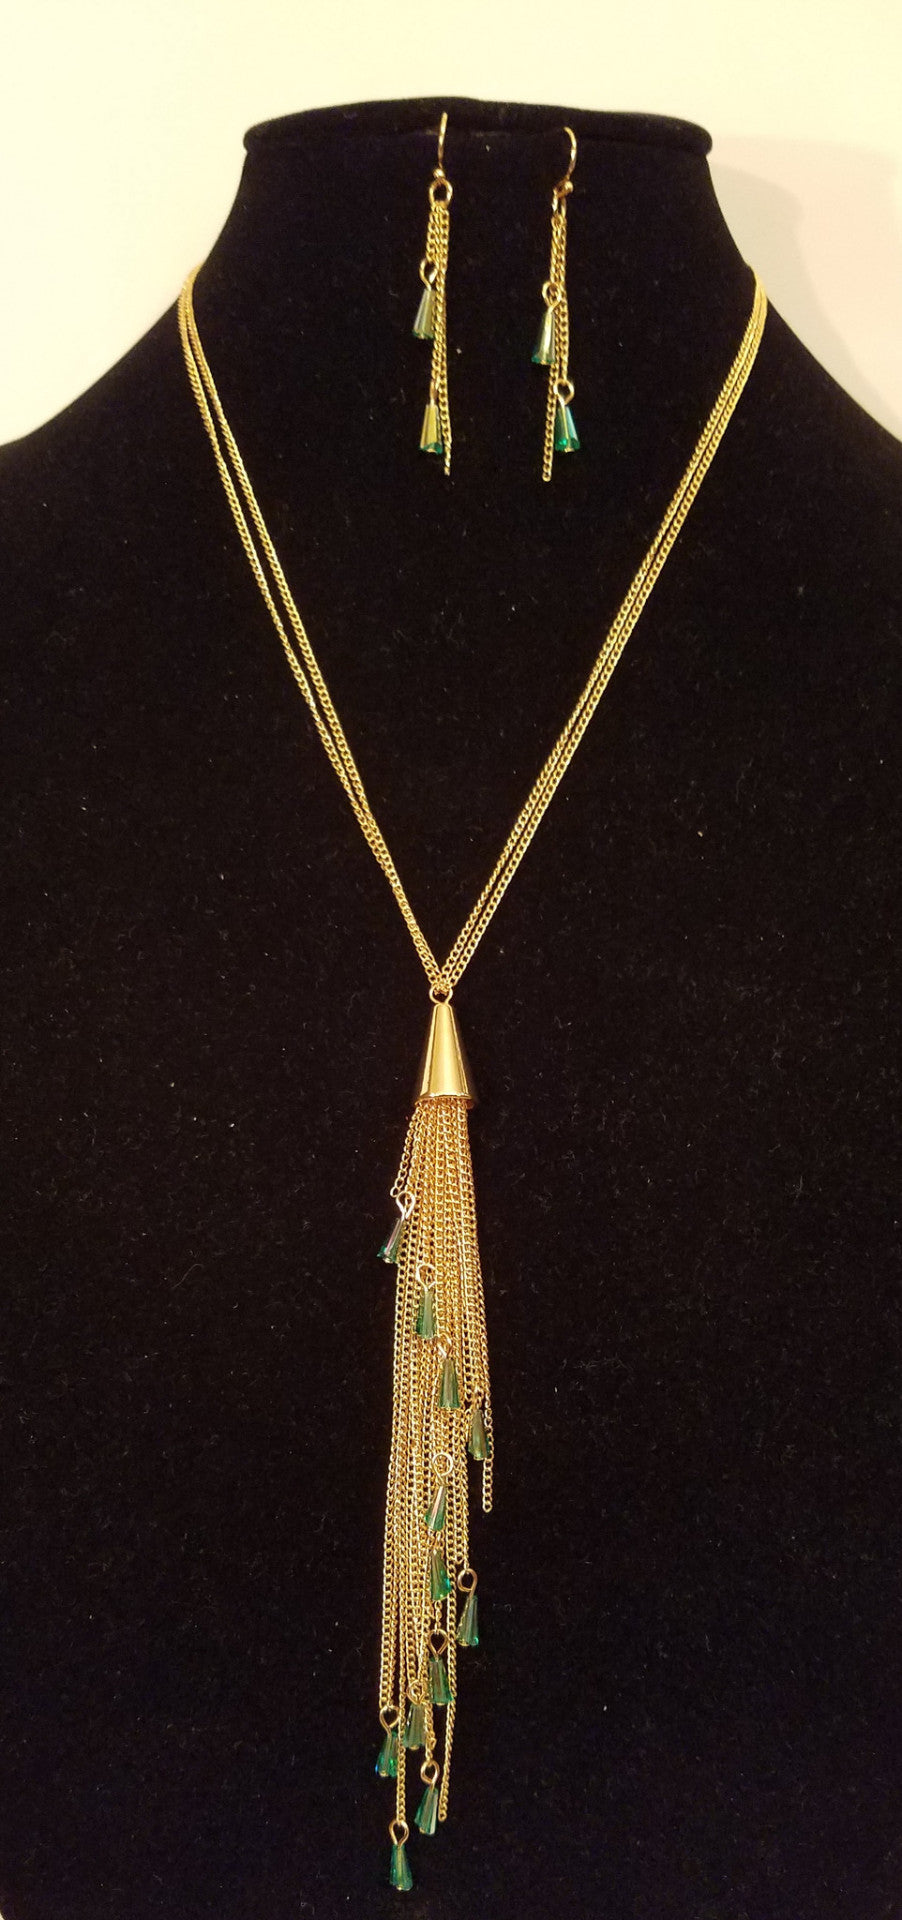 Long Tassle Necklace - Bedazzled By Jeanelle